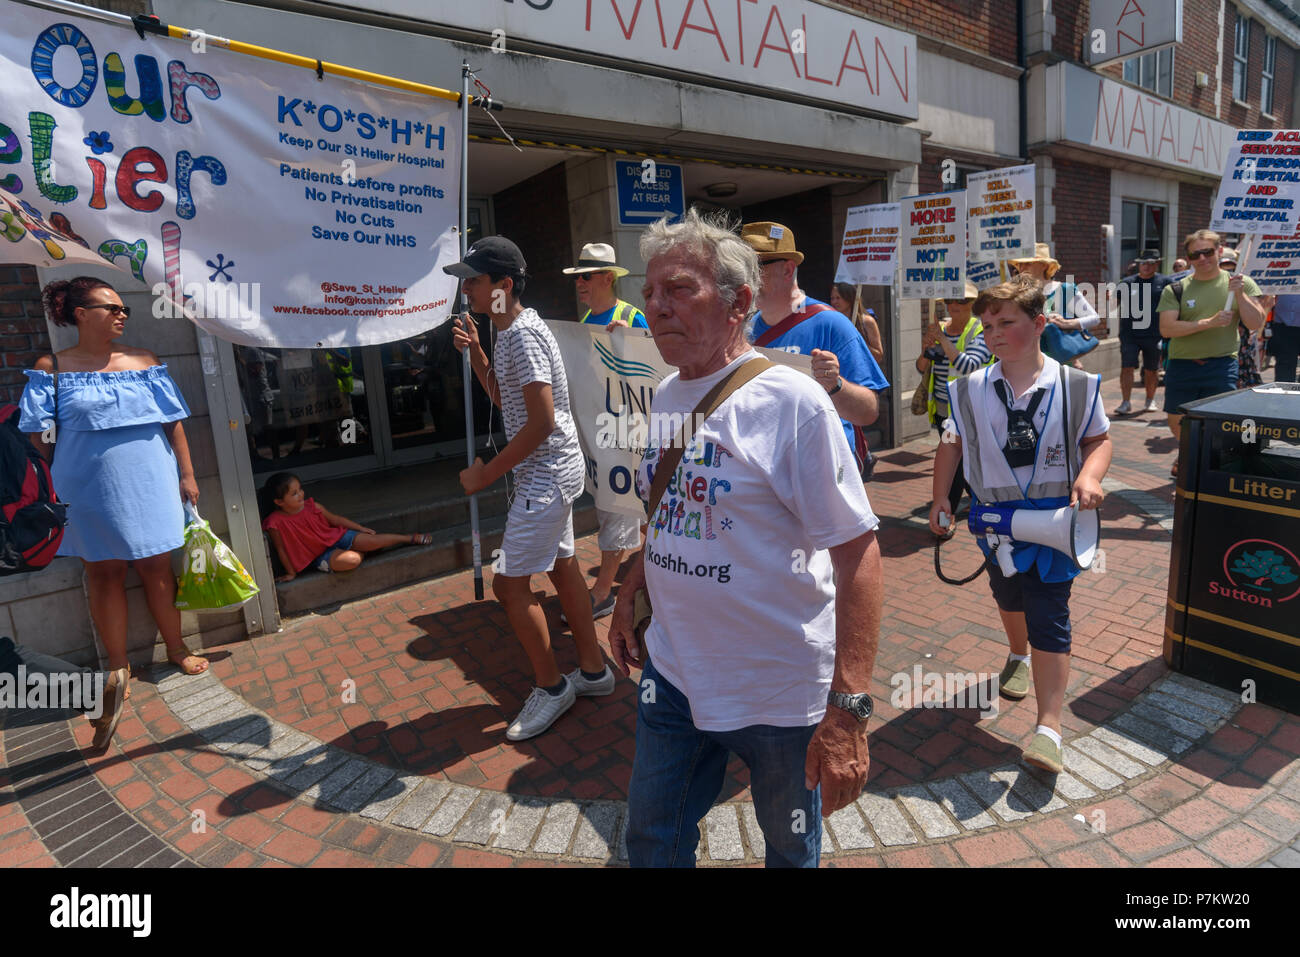 London, UK. 7th July 2018. Keep Our St Helier Hospital (KOSHH) campaigners against the closure of acute facilities at Epsom and St Helier Hospitals in south London celebrate the 70th Birthday of the NHS by marching from Manor Park through Sutton High St to a rally in front of St Helier Hospital.  The closures are prompted by government cuts which call for huge savings by the trust, and would Credit: Peter Marshall/Alamy Live NewsStock Photo